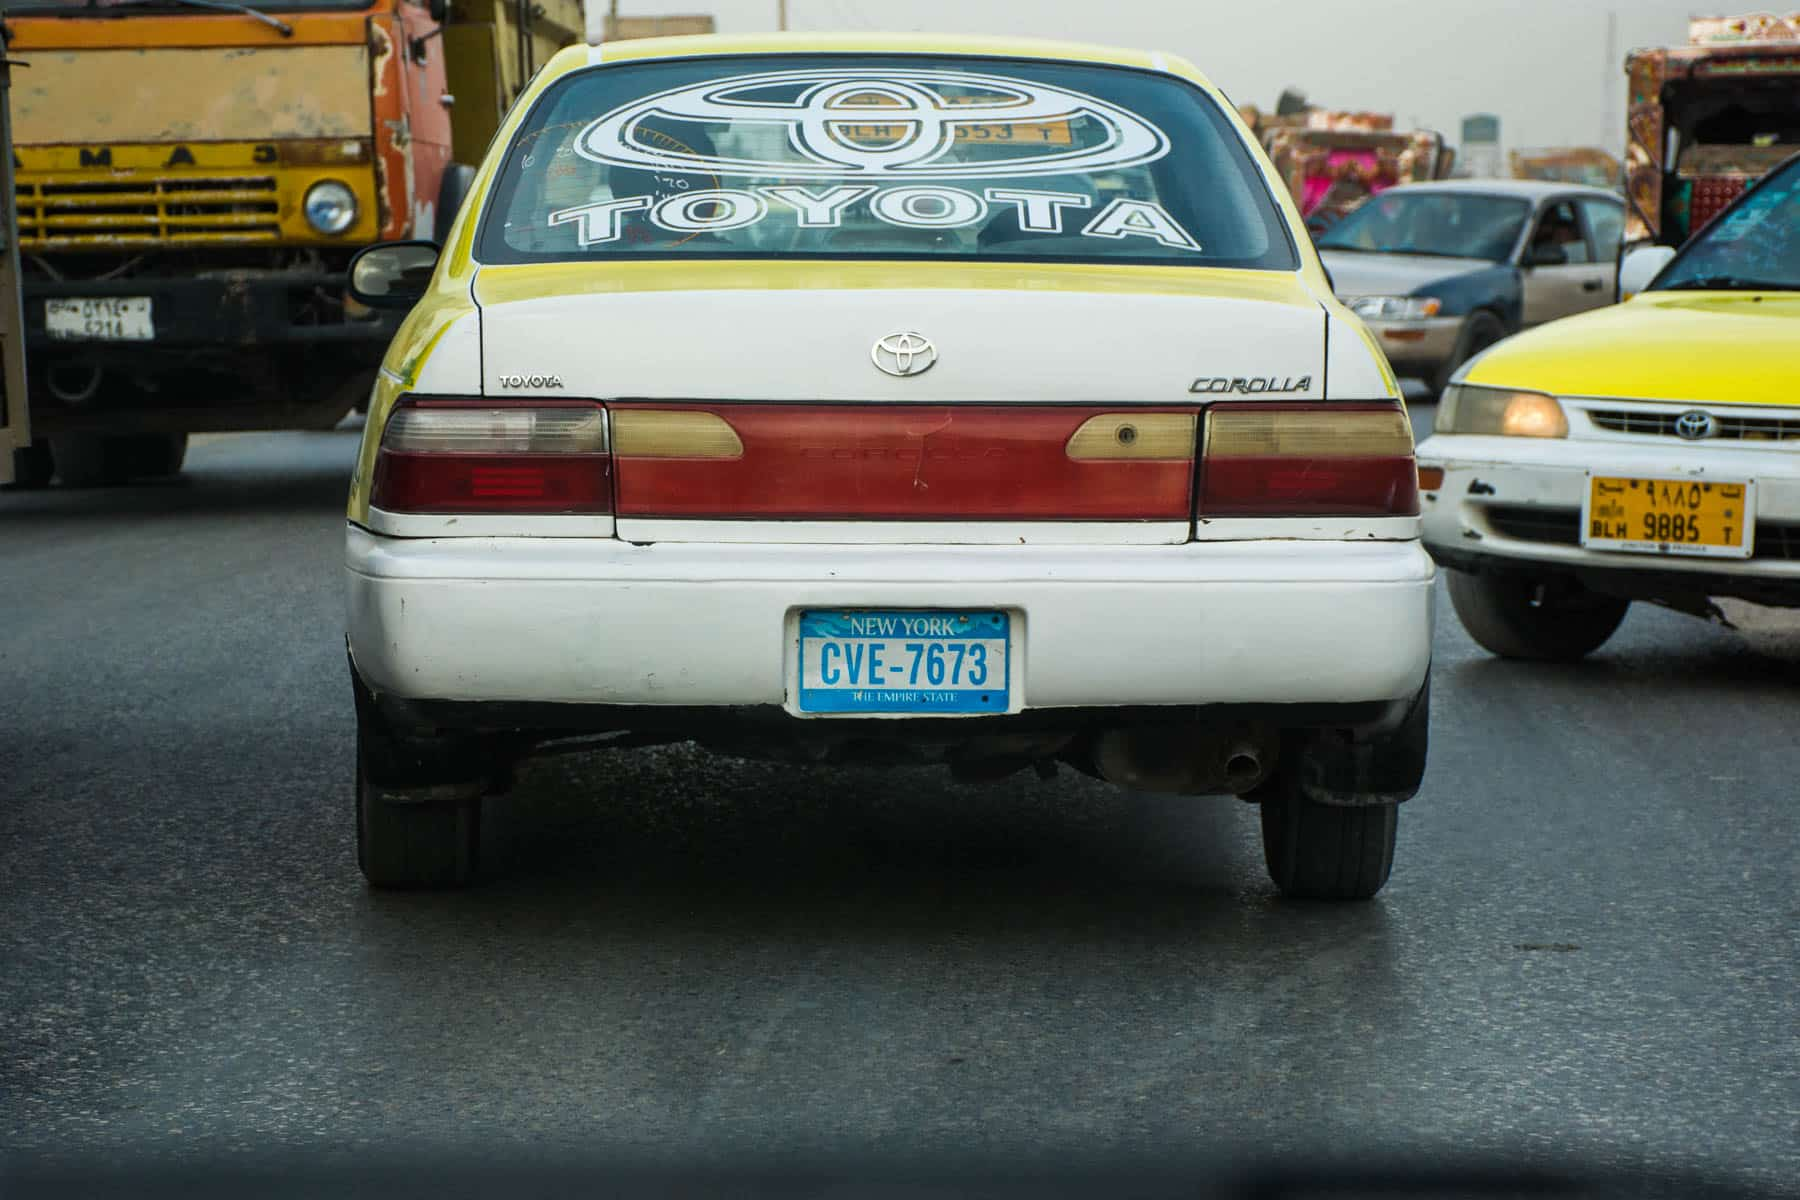 Photos of Mazar-i-Sharif, Afghanistan - A New York taxi license plate in Mazar - Lost With Purpose